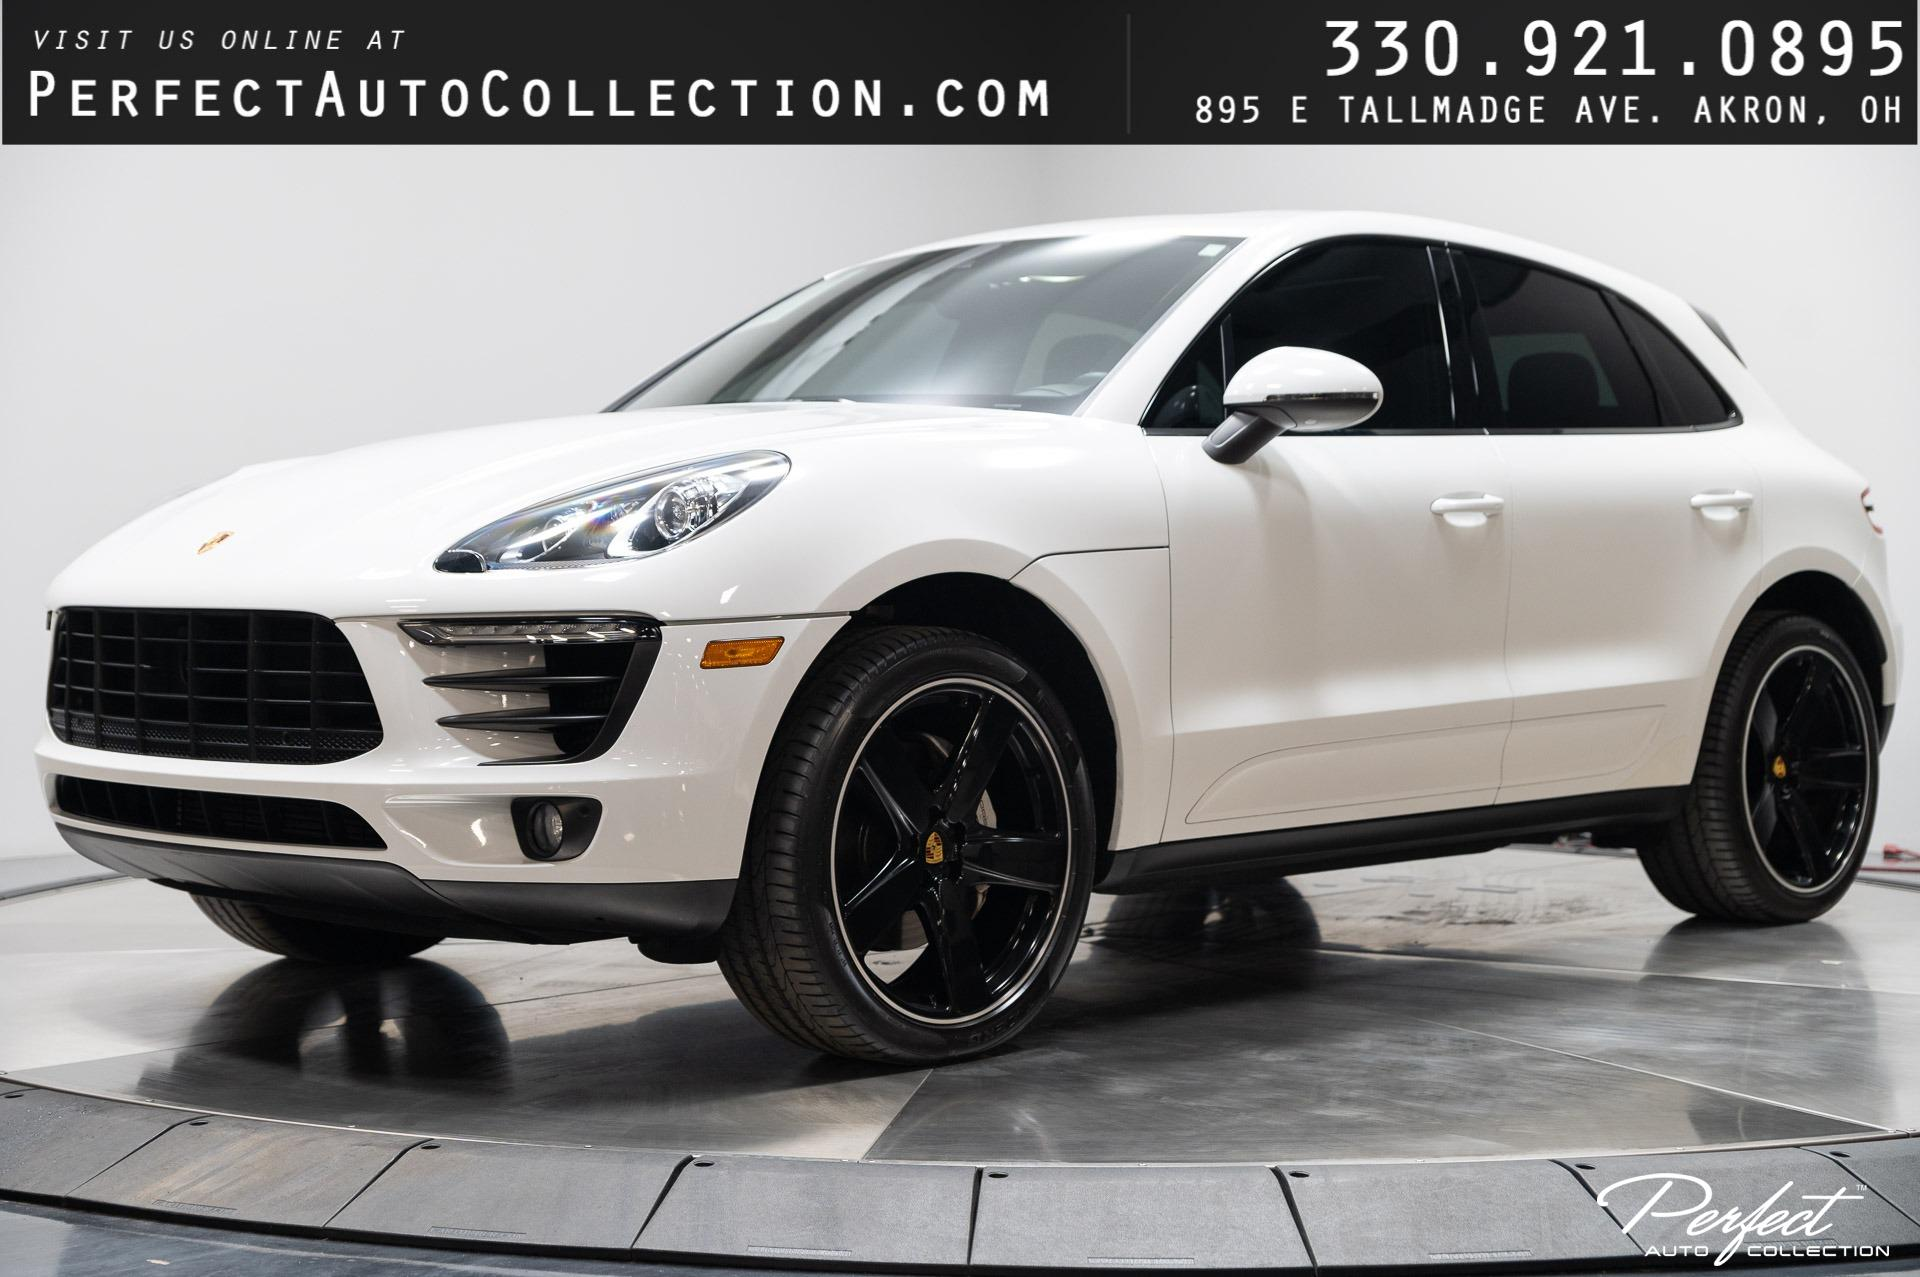 Used 2017 Porsche Macan S for sale $48,495 at Perfect Auto Collection in Akron OH 44310 1